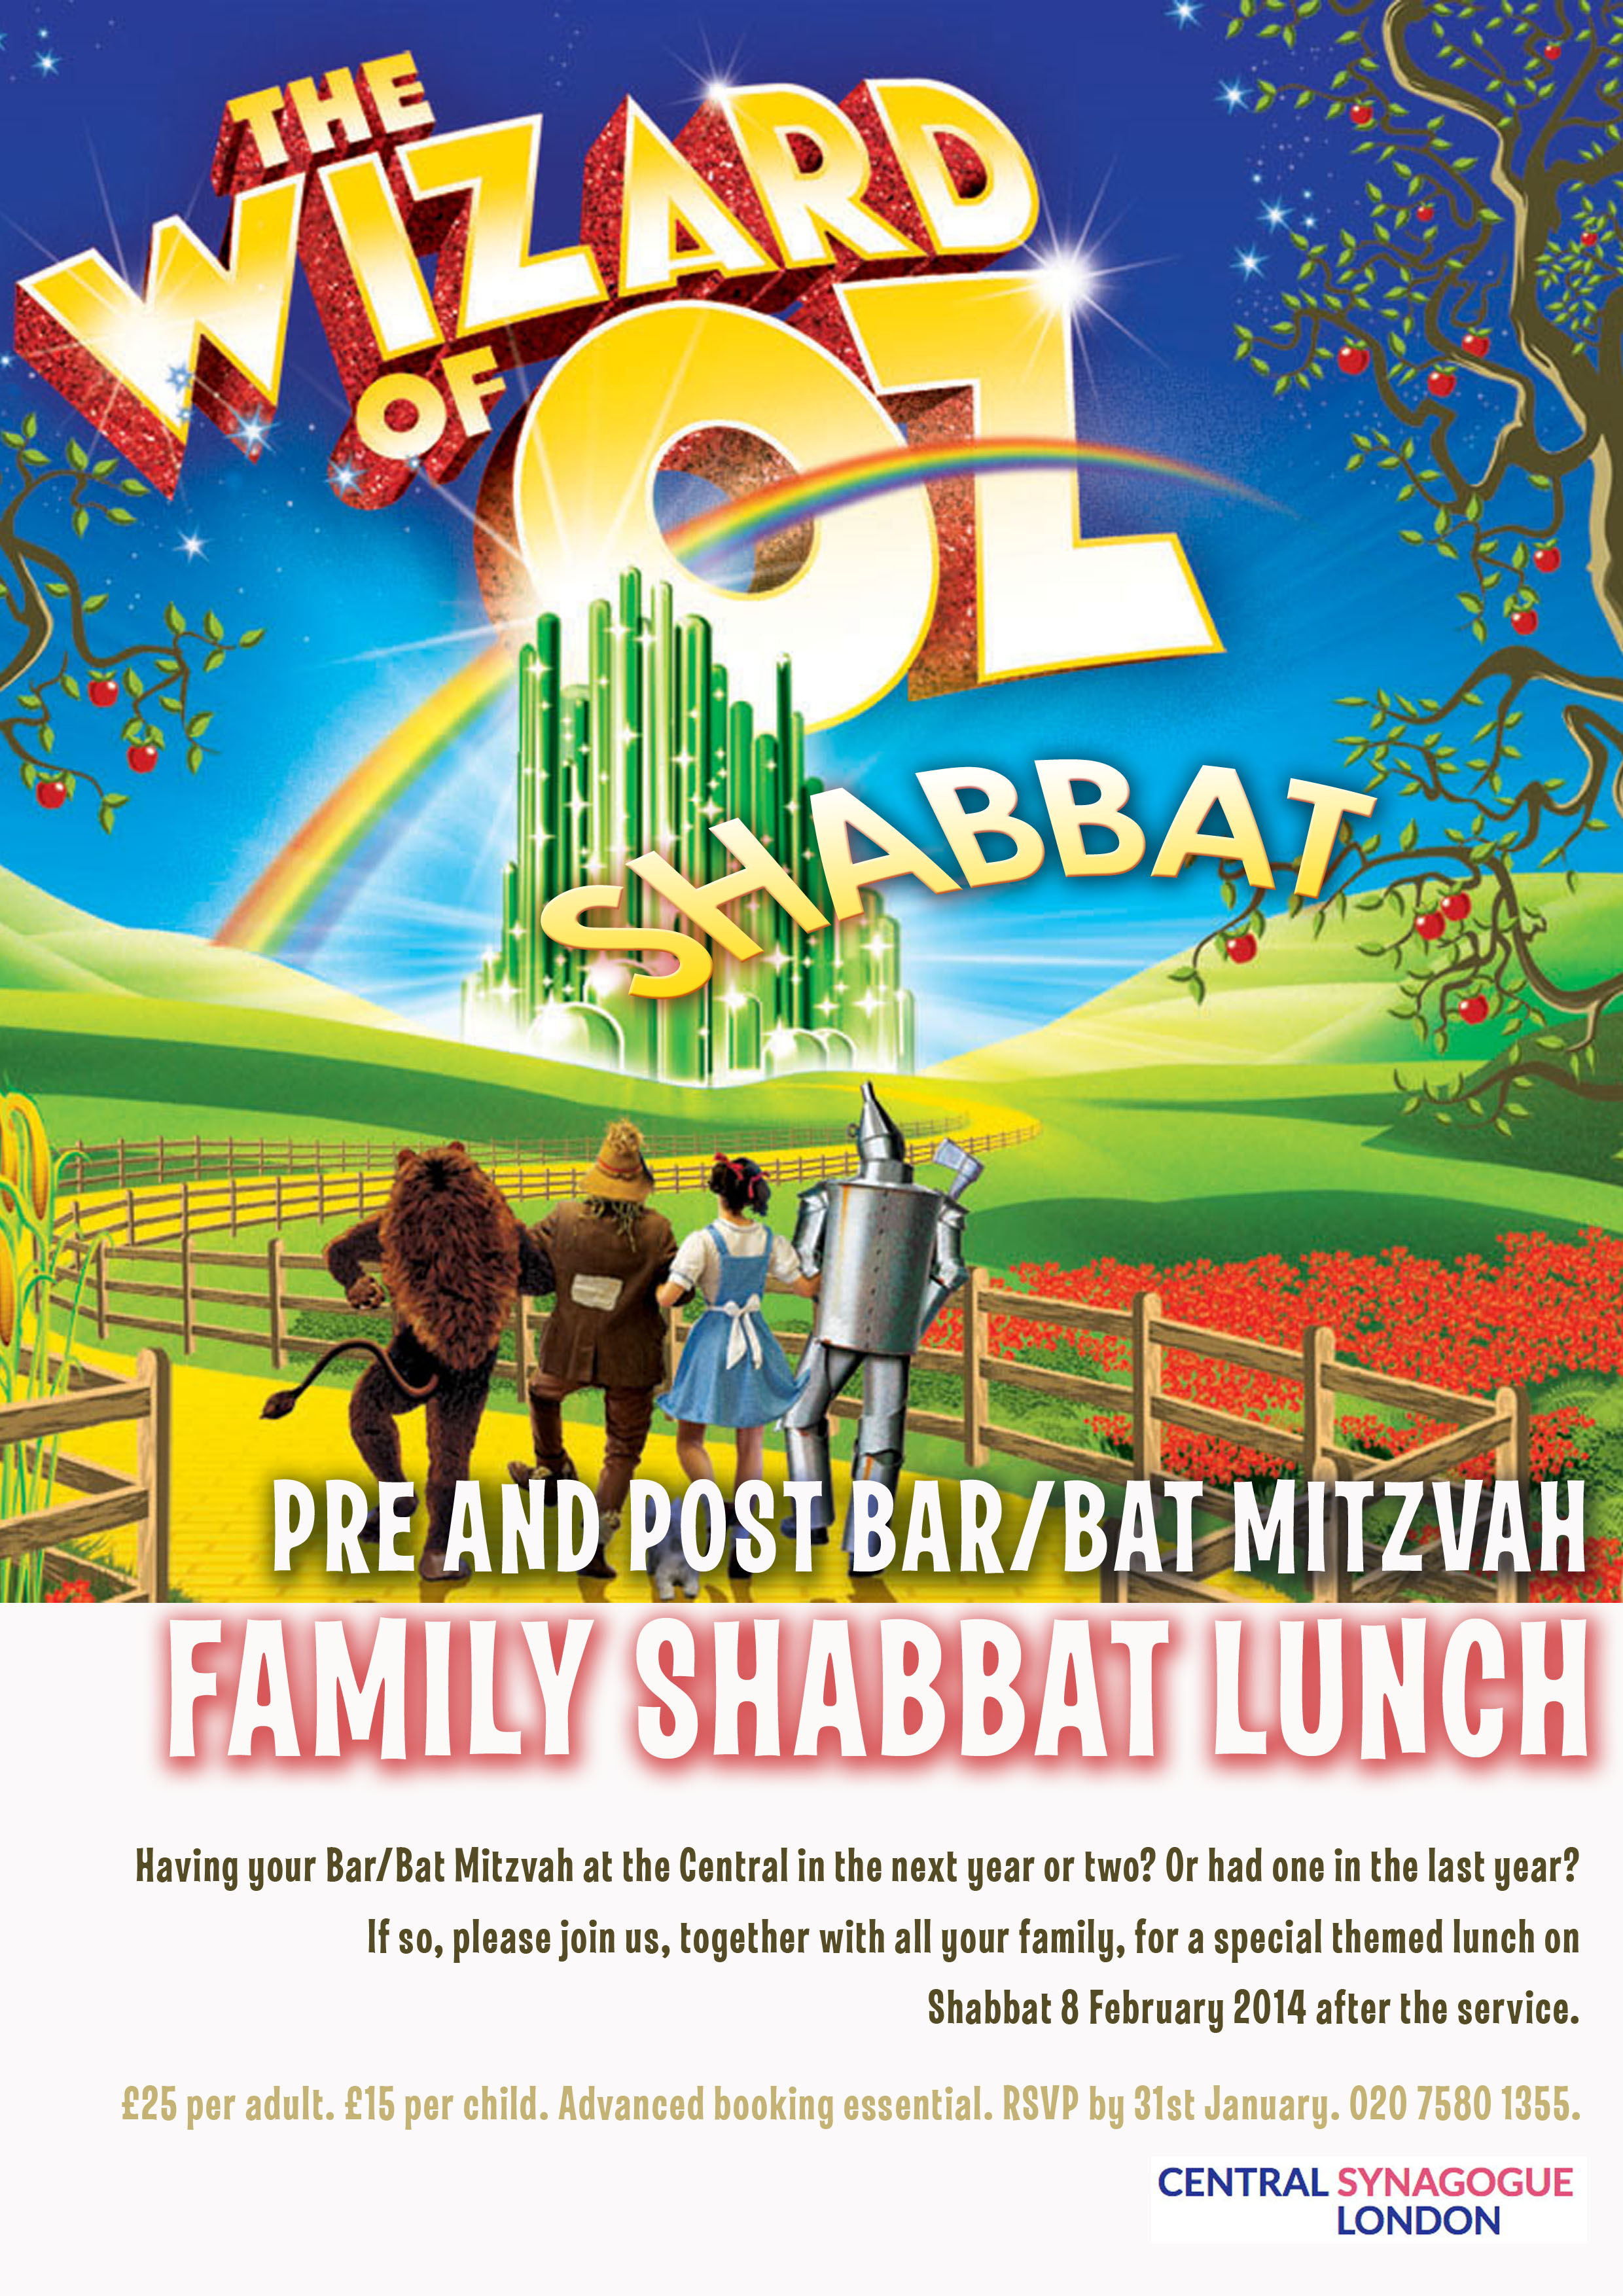 Bar Bat Mitzvah family lunch copy